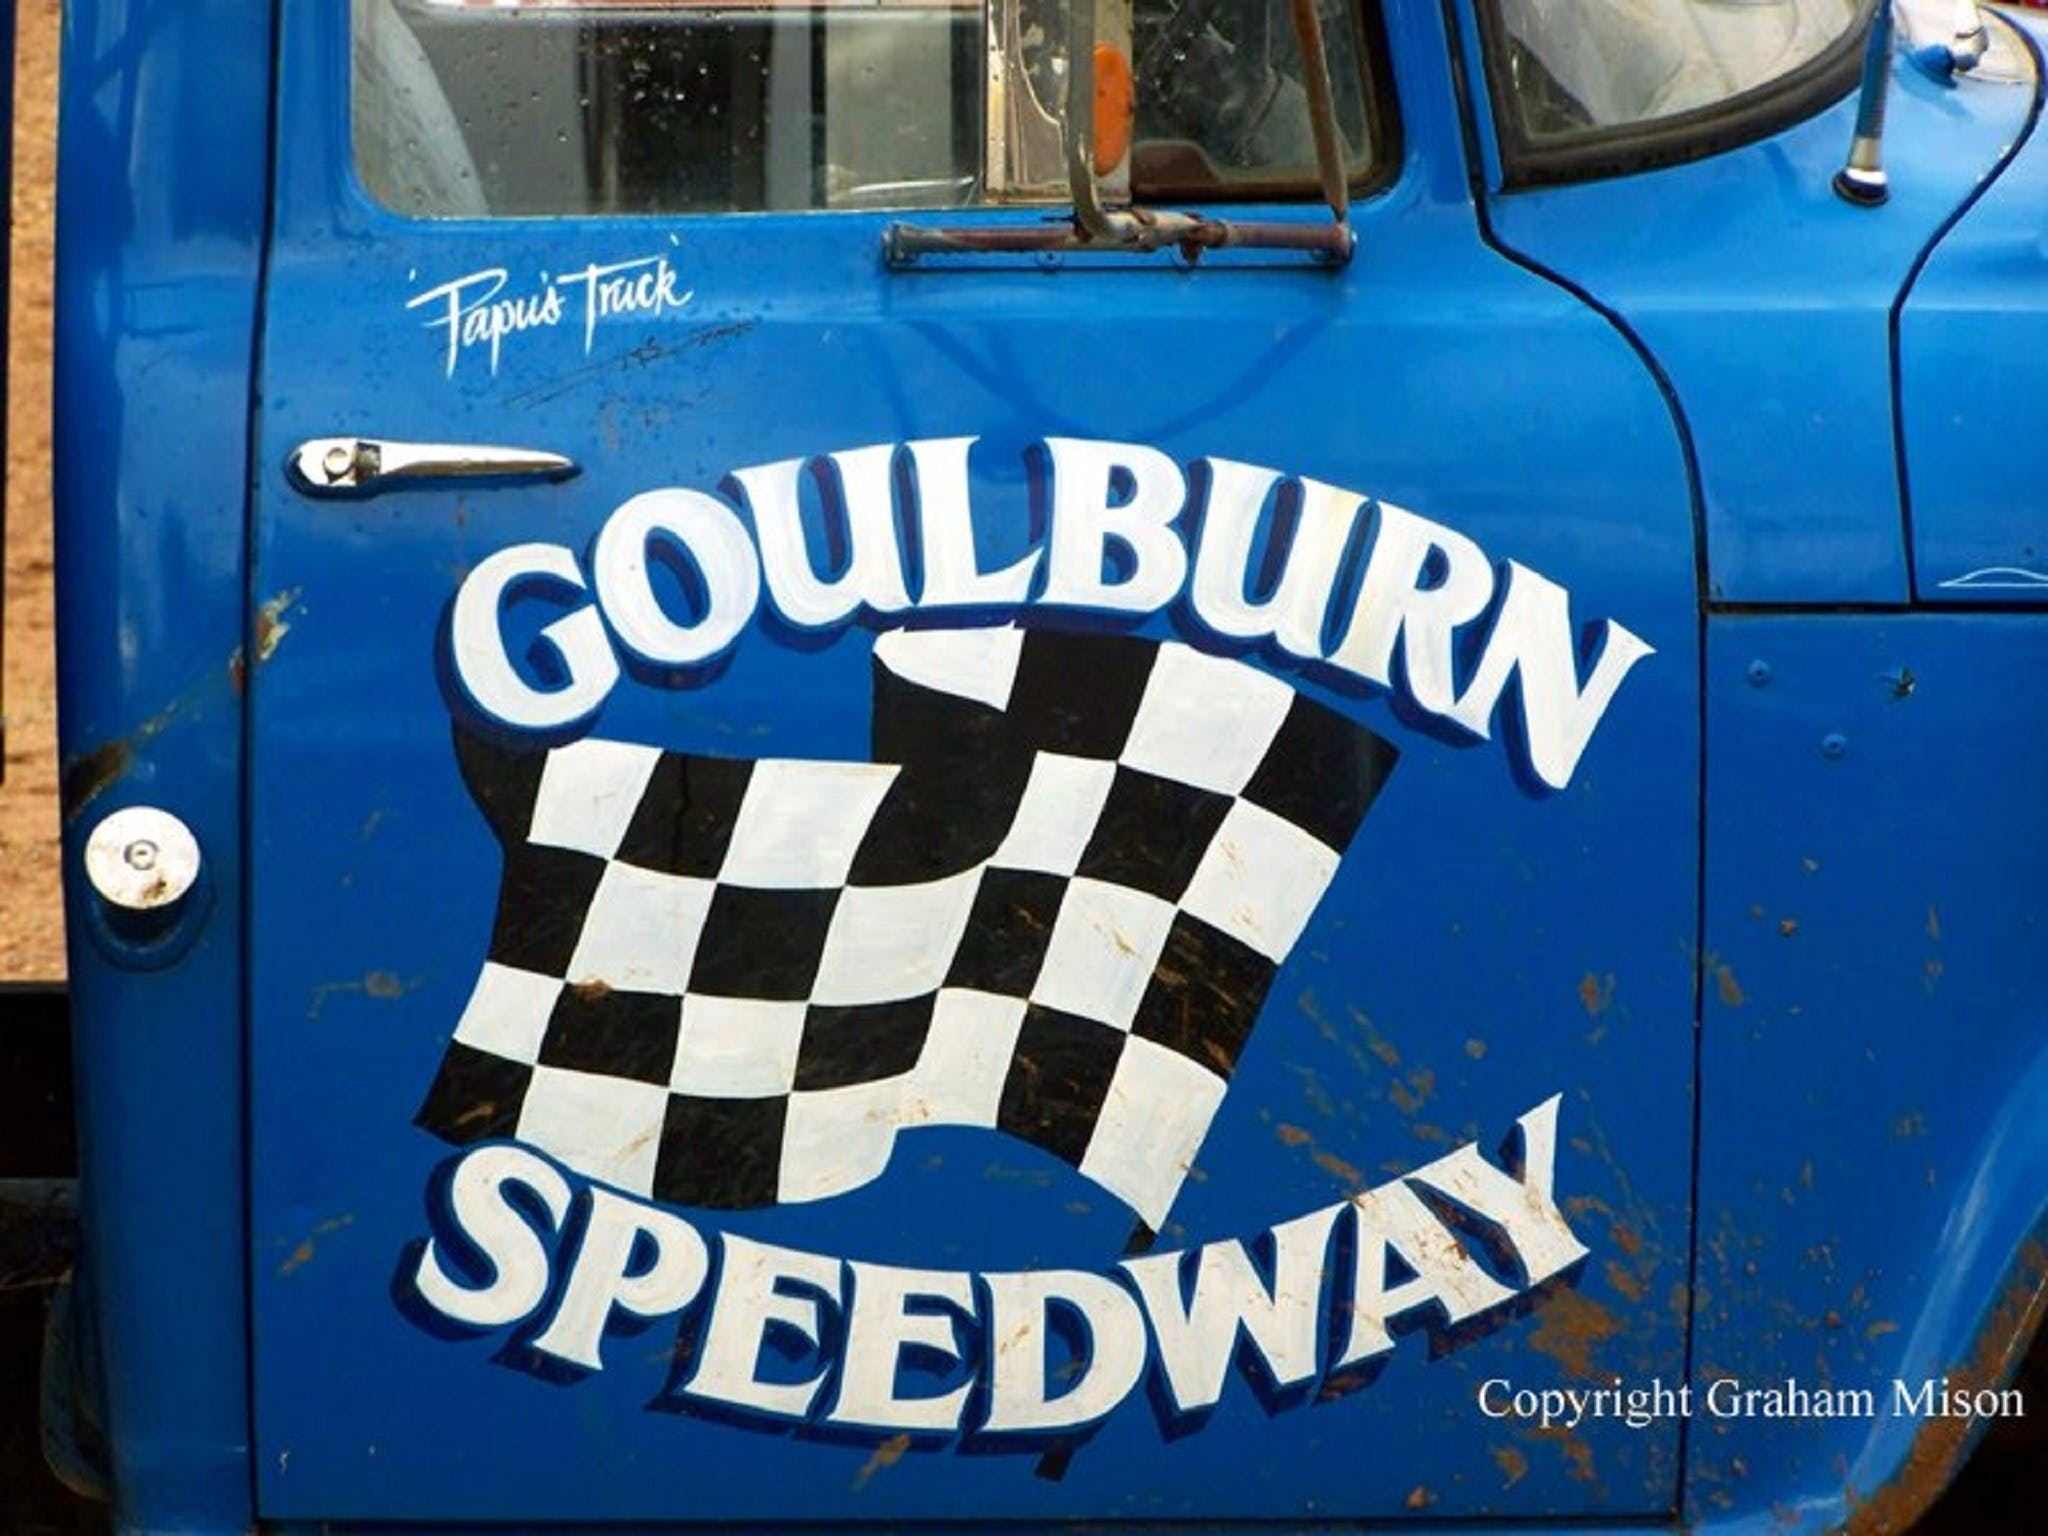 50 years of racing at Goulburn Speedway - Accommodation Batemans Bay